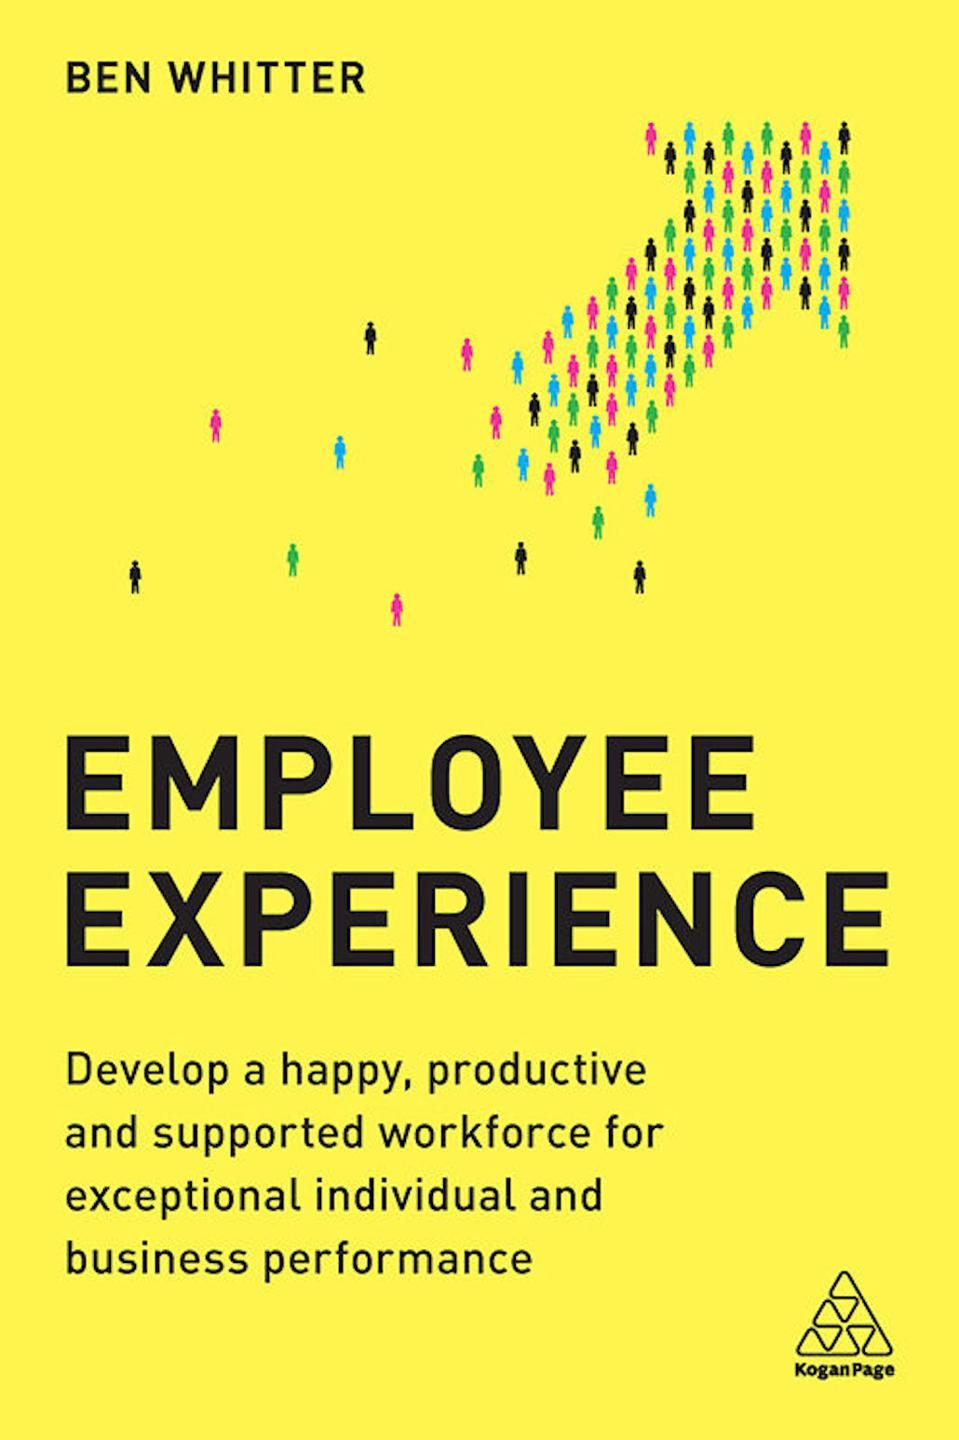 Employee Experience: Develop a Happy, Productive and Supported Workforce for Exceptional Individual and Business Performance by Ben Whitter